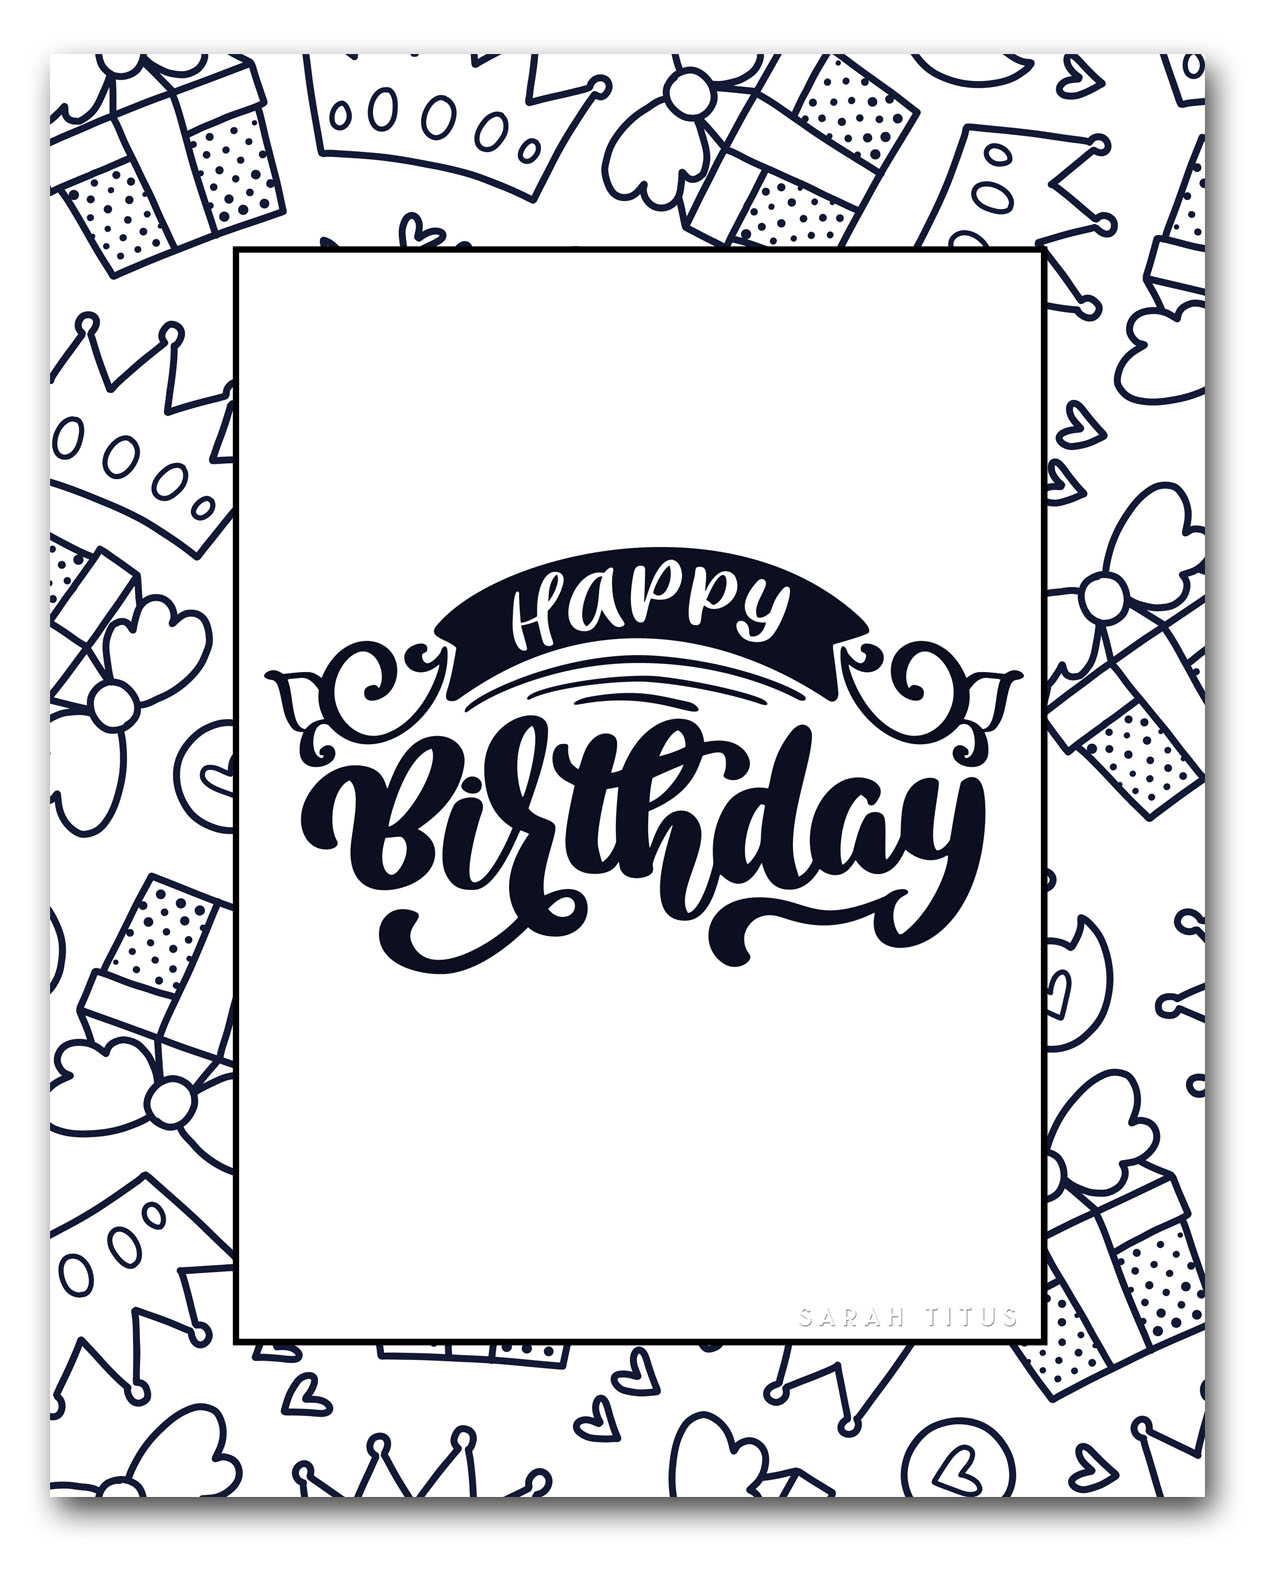 photo regarding Printable Happy Birthday Coloring Pages referred to as 60 Least difficult Cost-free Printable Pleased Birthday Coloring Sheets